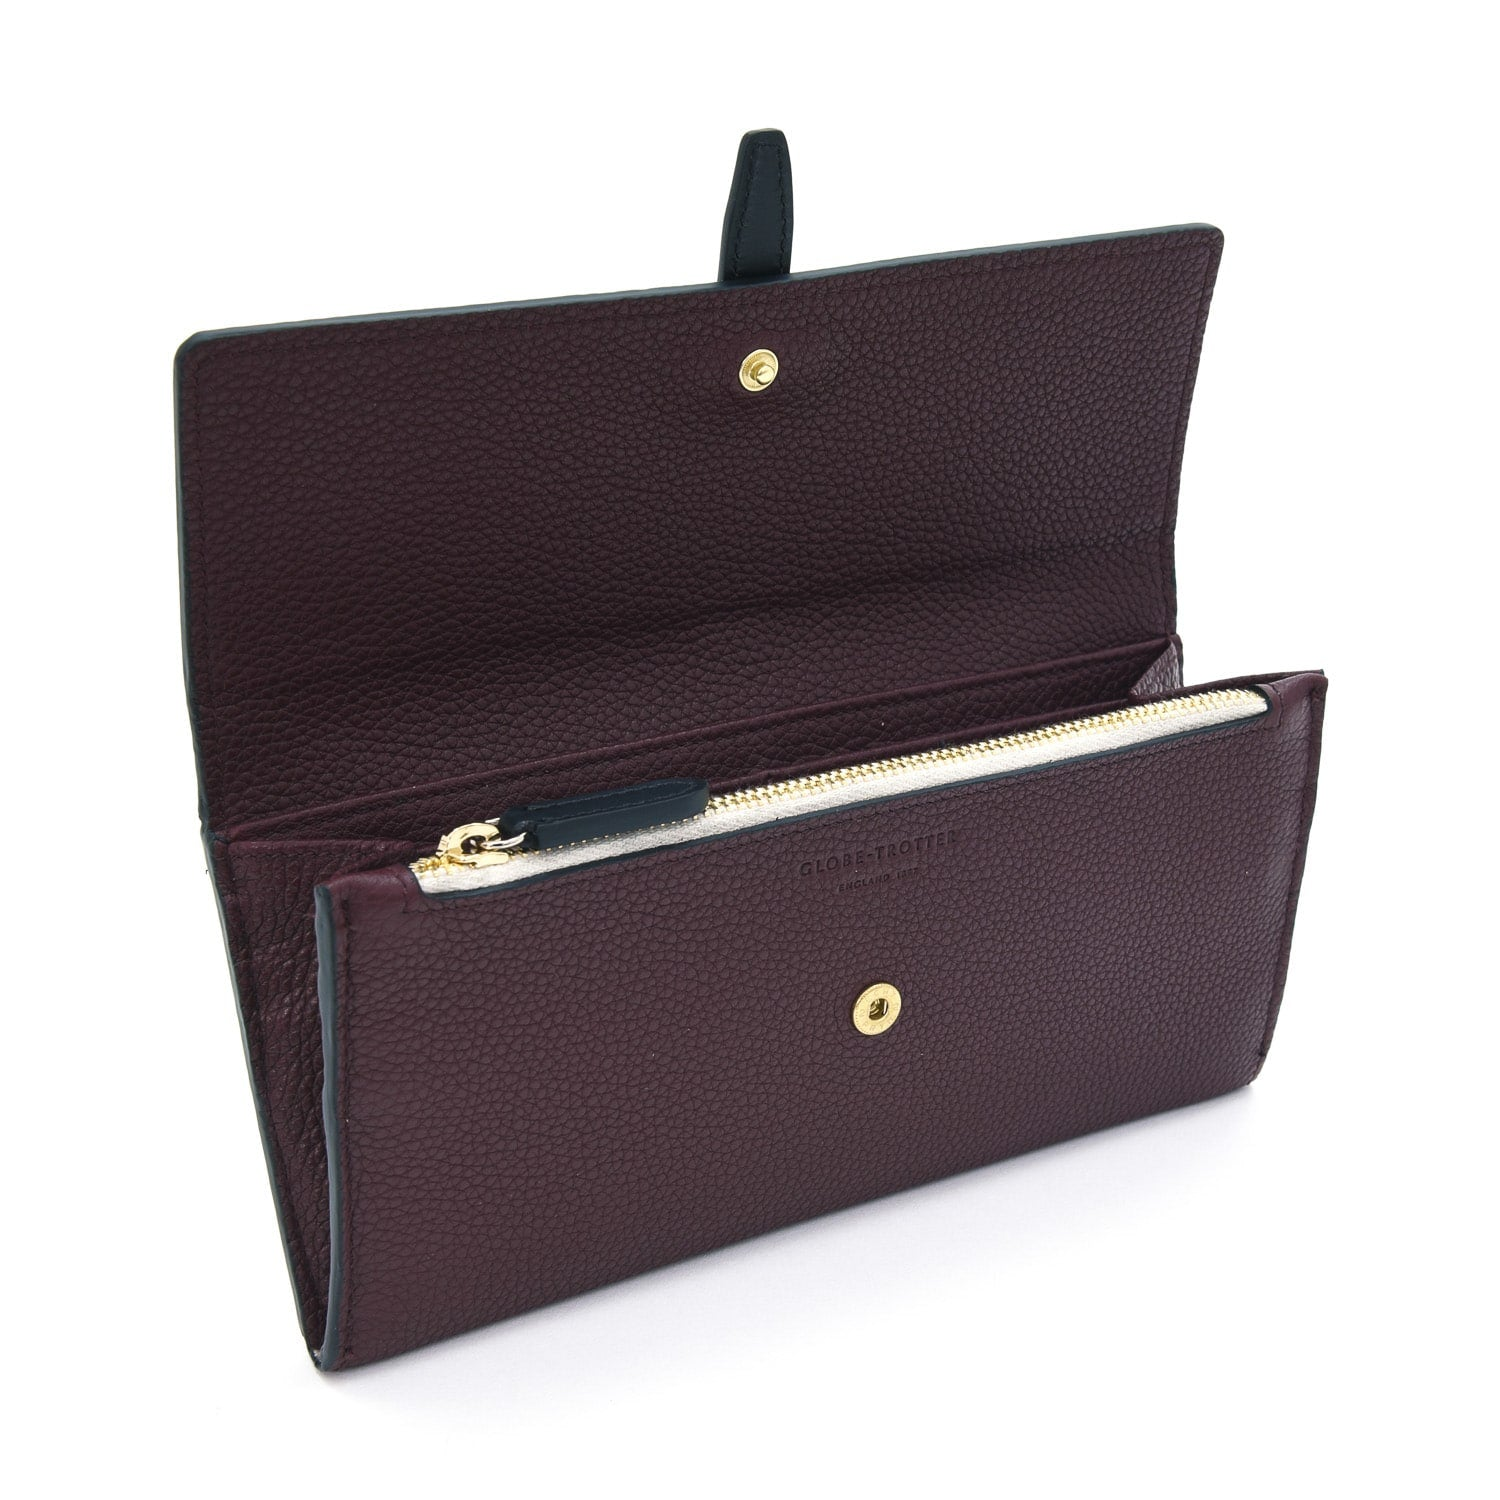 Centenary Leather · Flap Over Purse - Oxblood